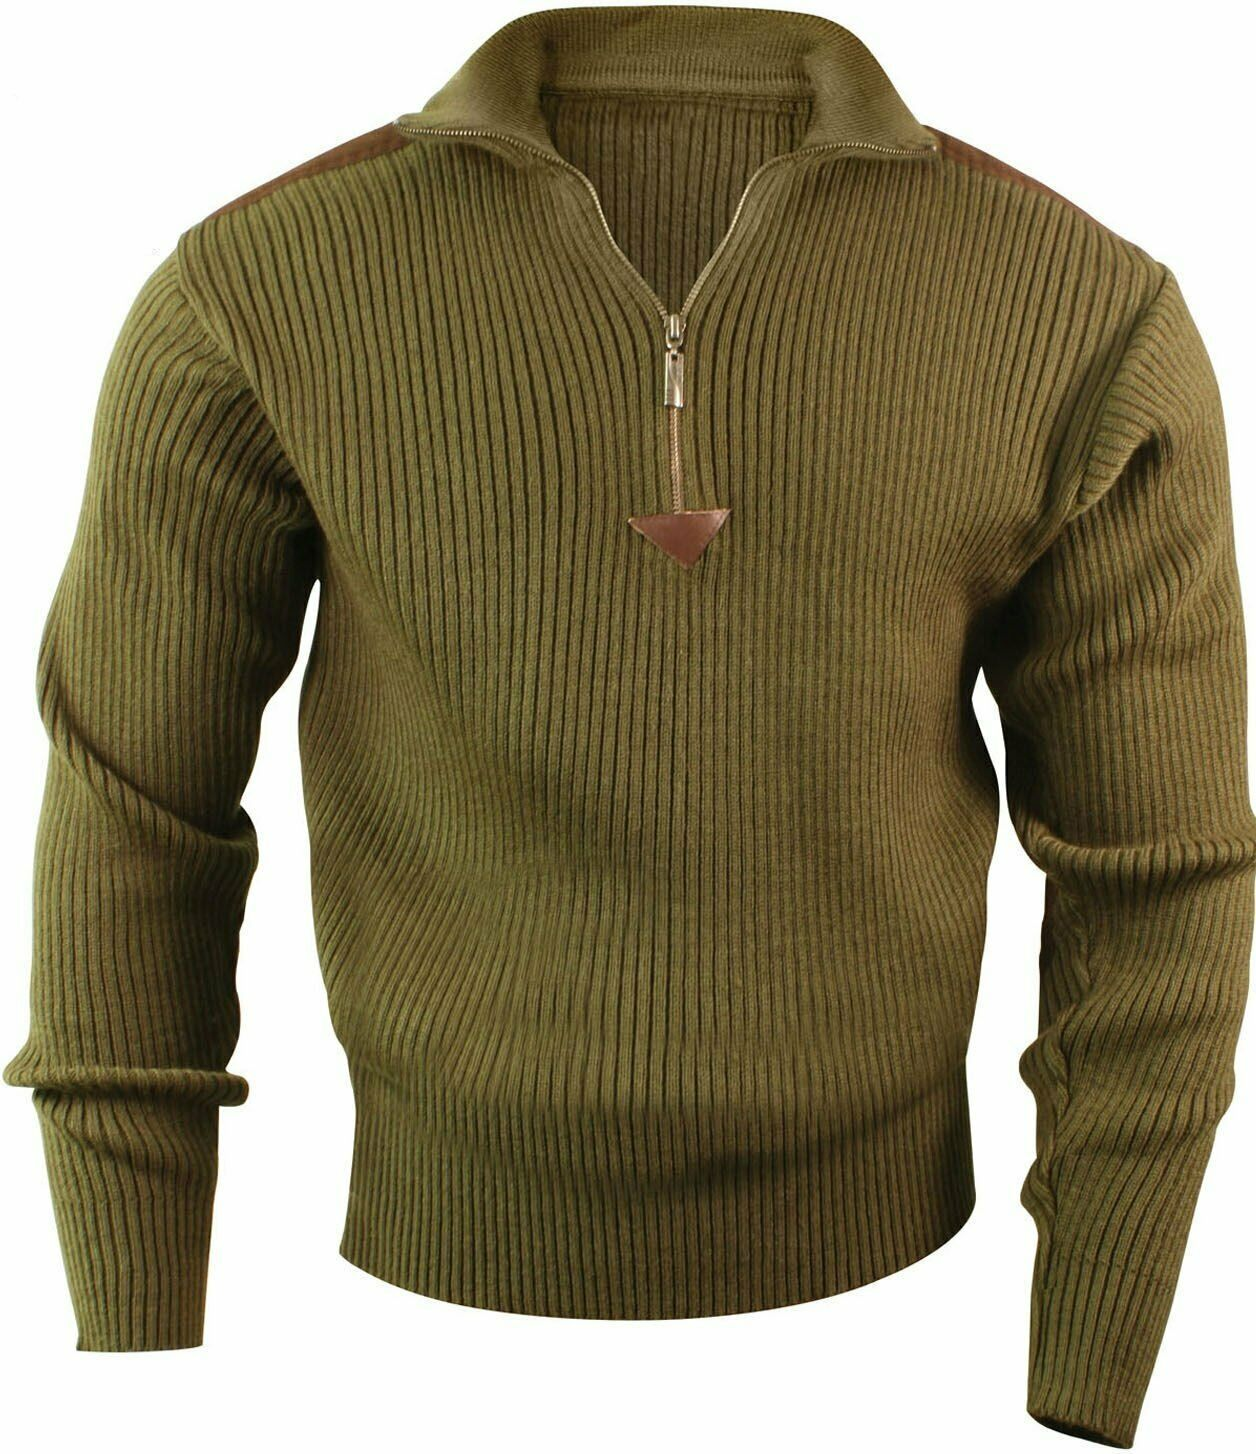 Primary image for Olive Drab Acrylic Commando Military Quarter Zip Sweater with Suede Patches